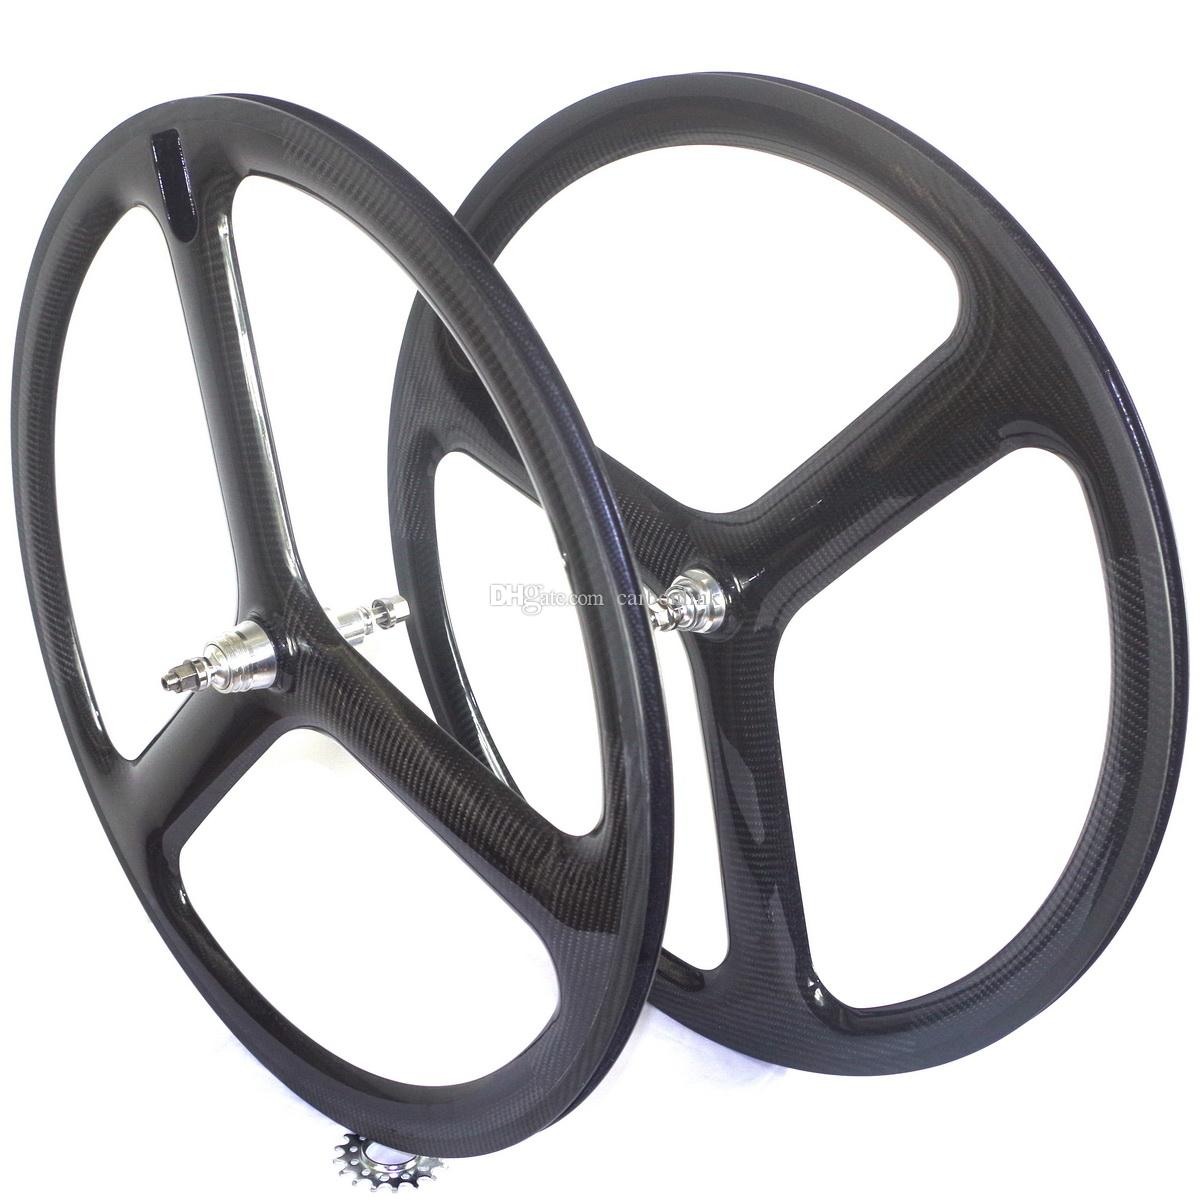 700c 3 Spoke Carbon Fiber Wheels Tri Spoke Carbon Wheelset Carbon